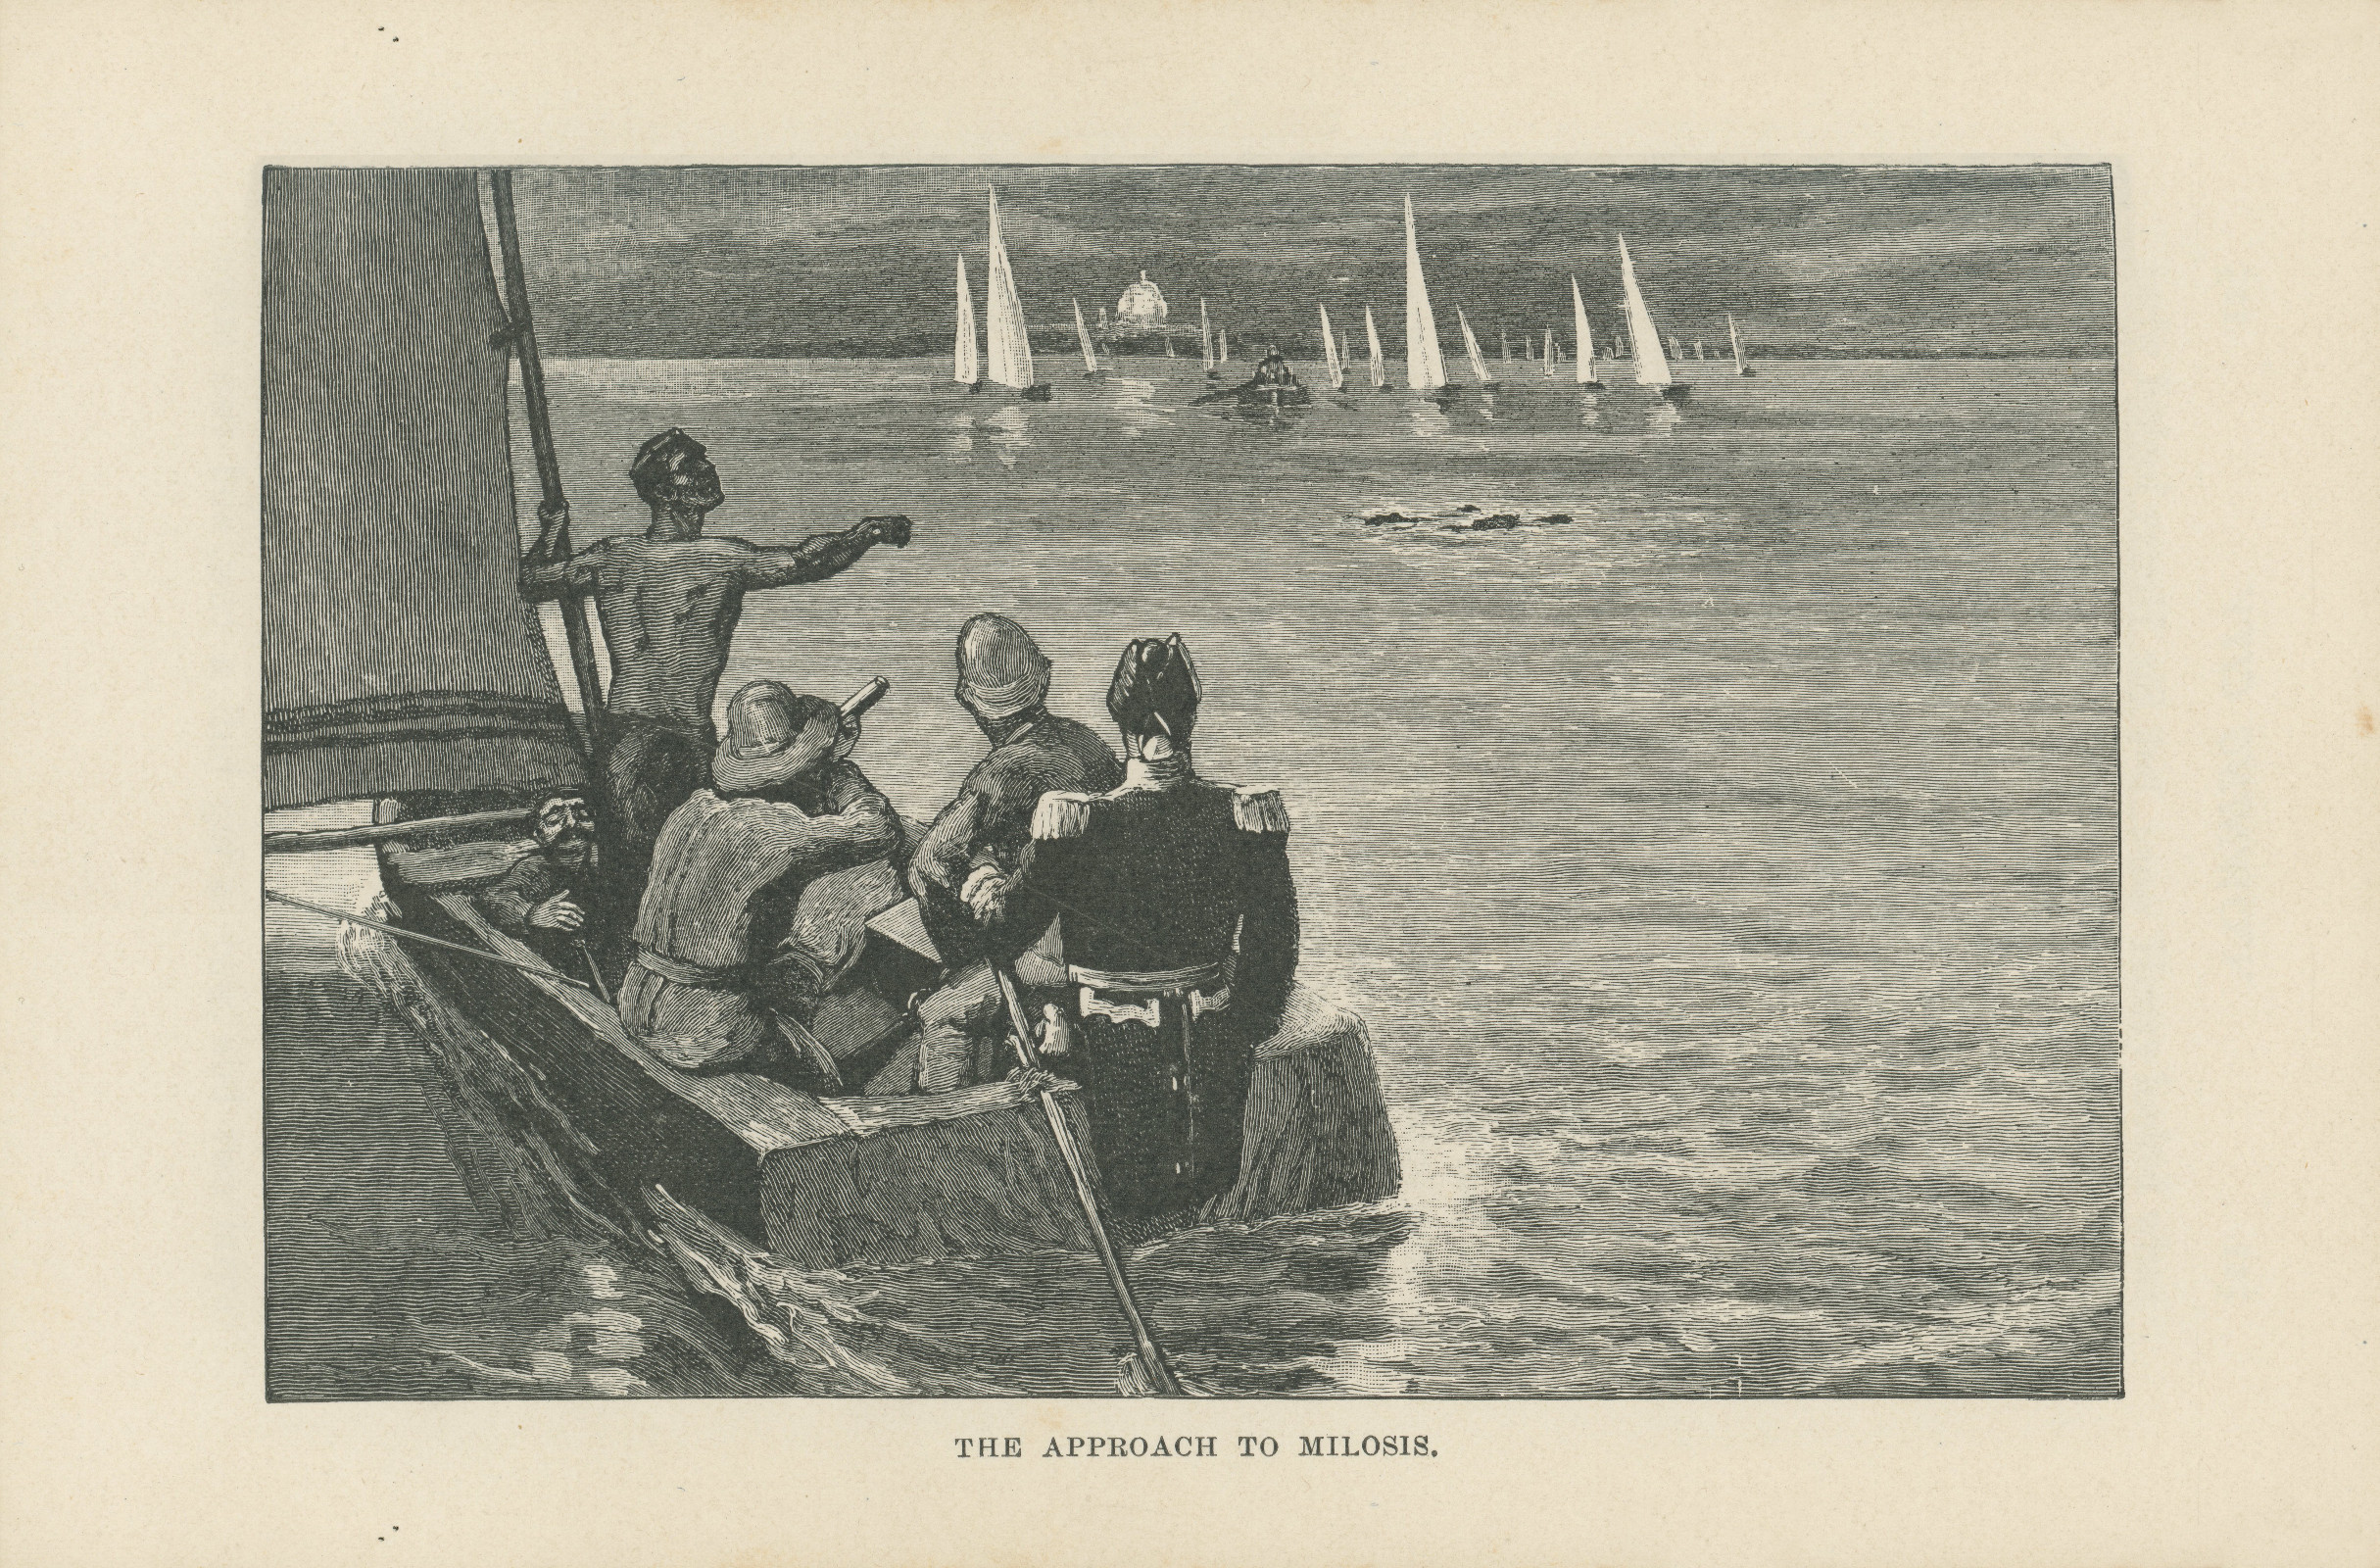 Theapproach1893124